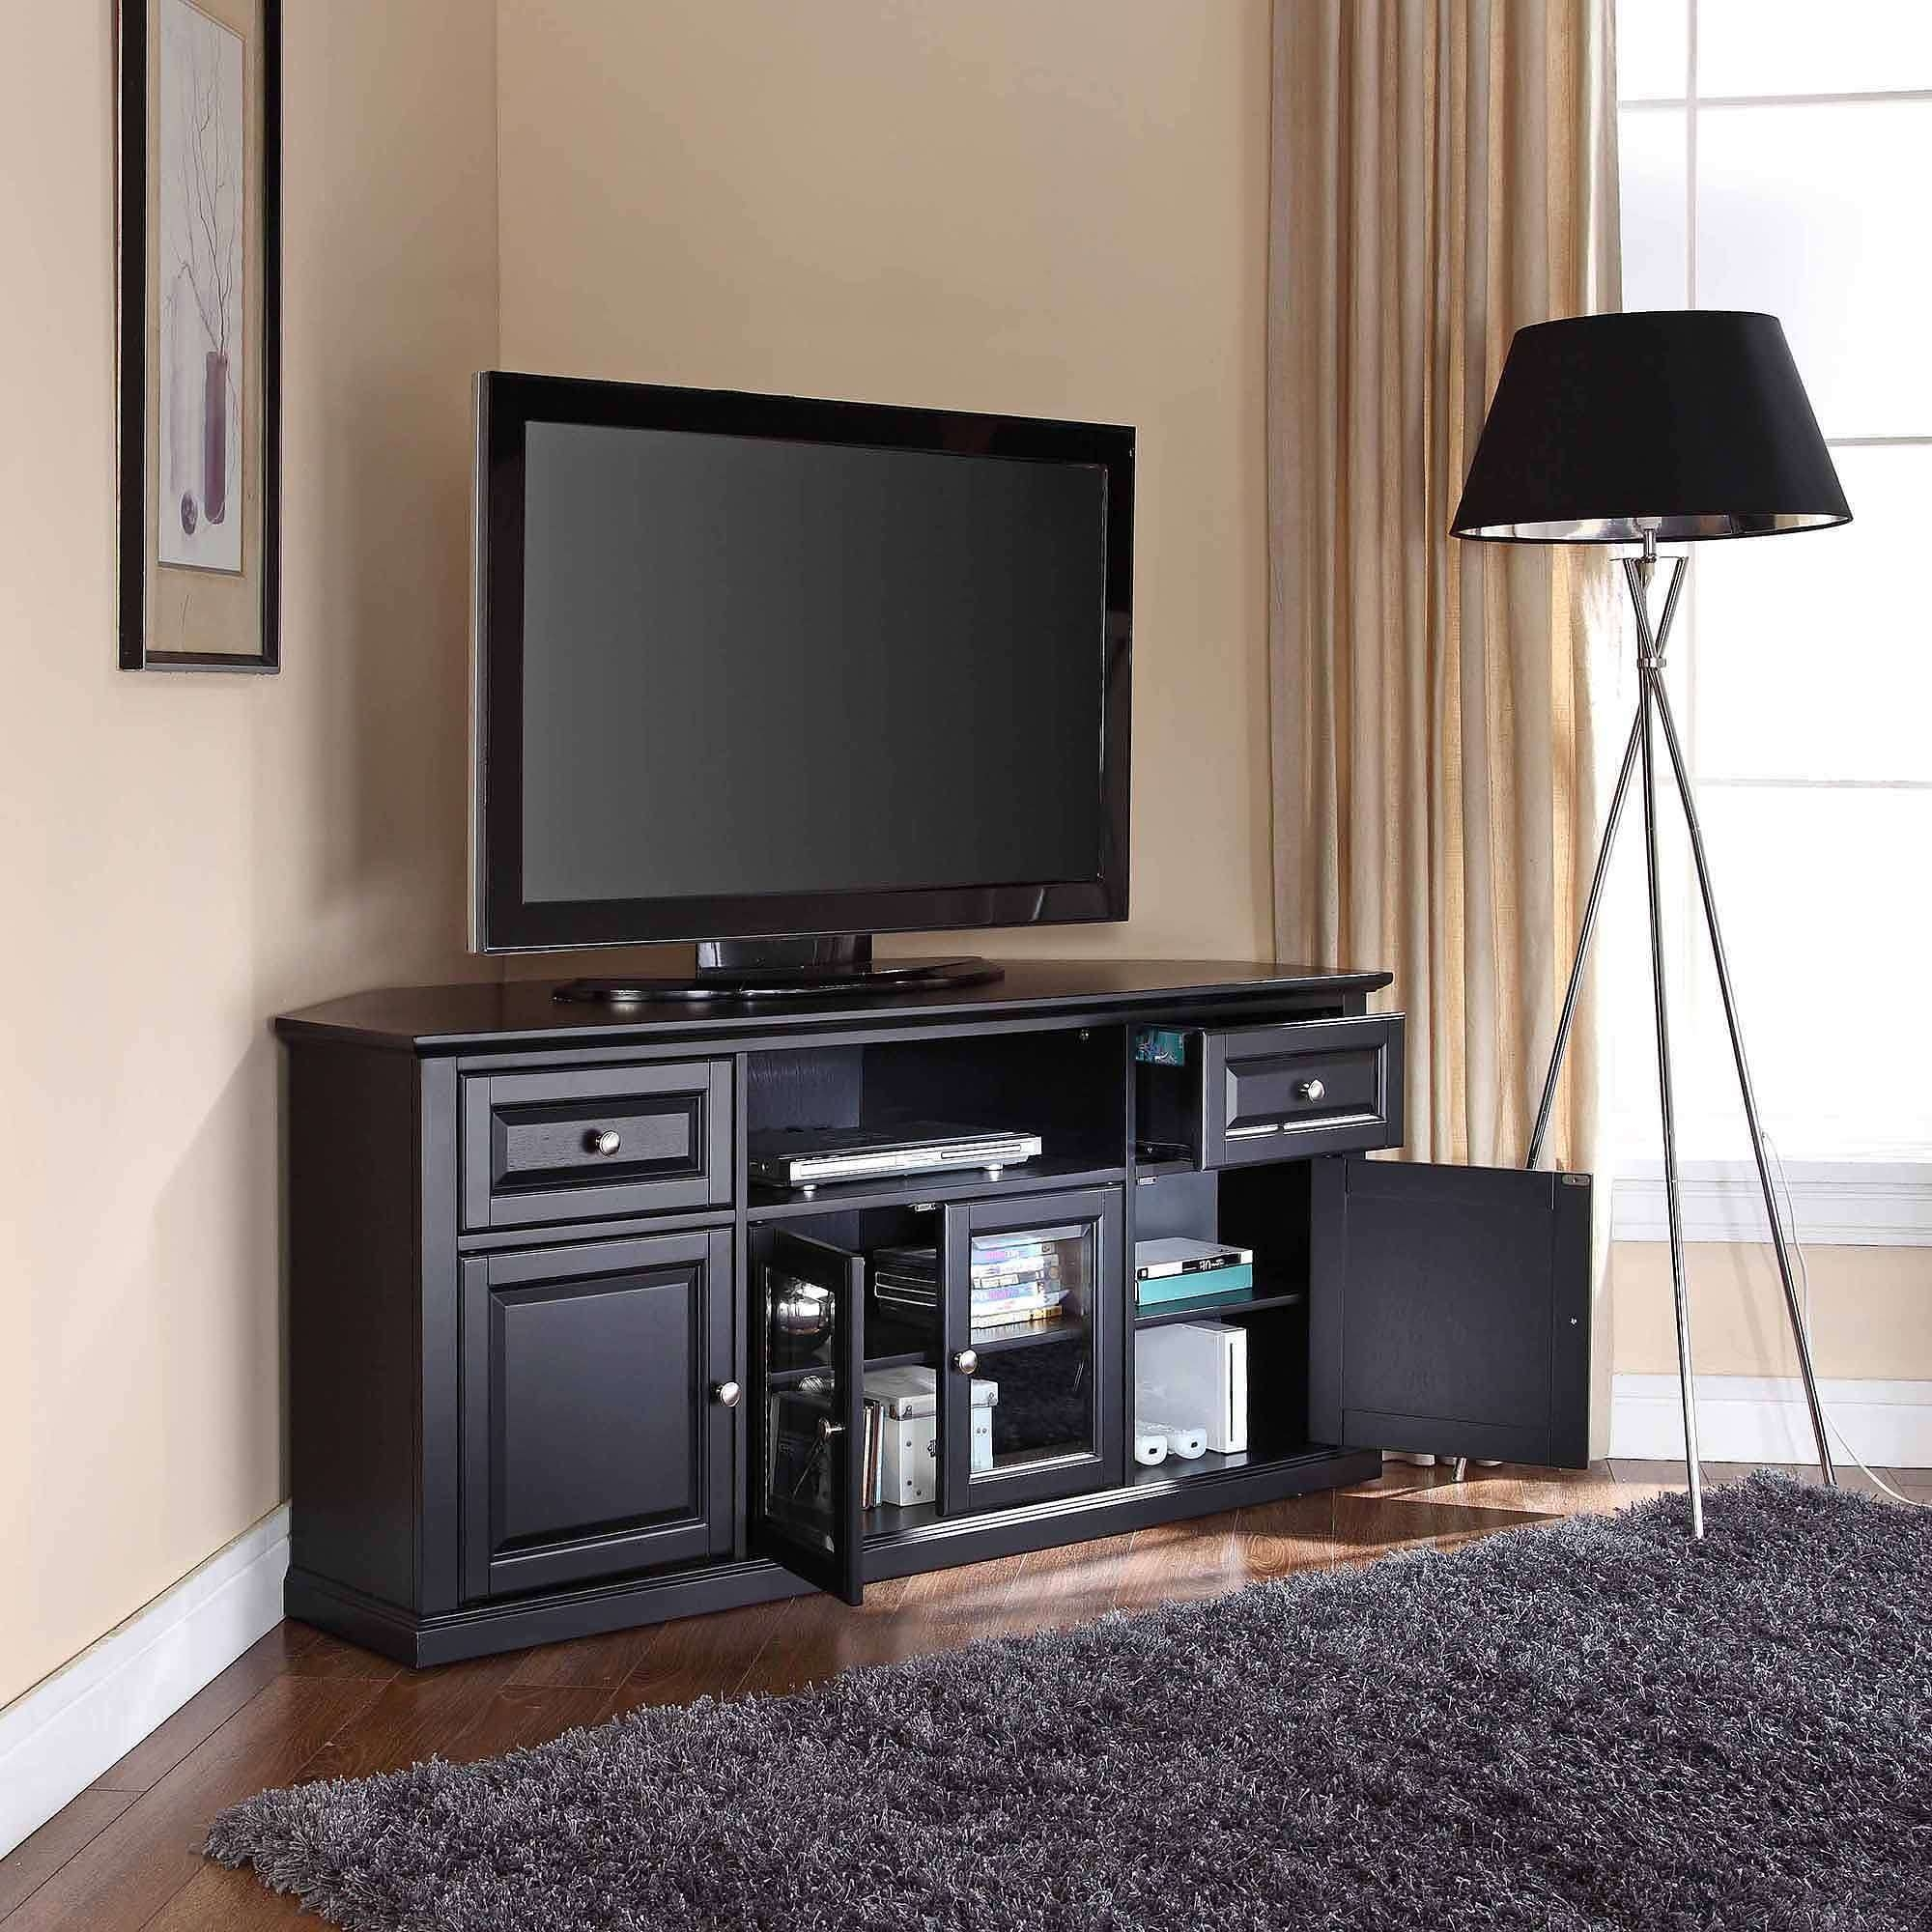 """Crosley Furniture Corner Tv Stand For Tvs Up To 60"""" – Walmart With Regard To Black Corner Tv Cabinets With Glass Doors (View 15 of 20)"""